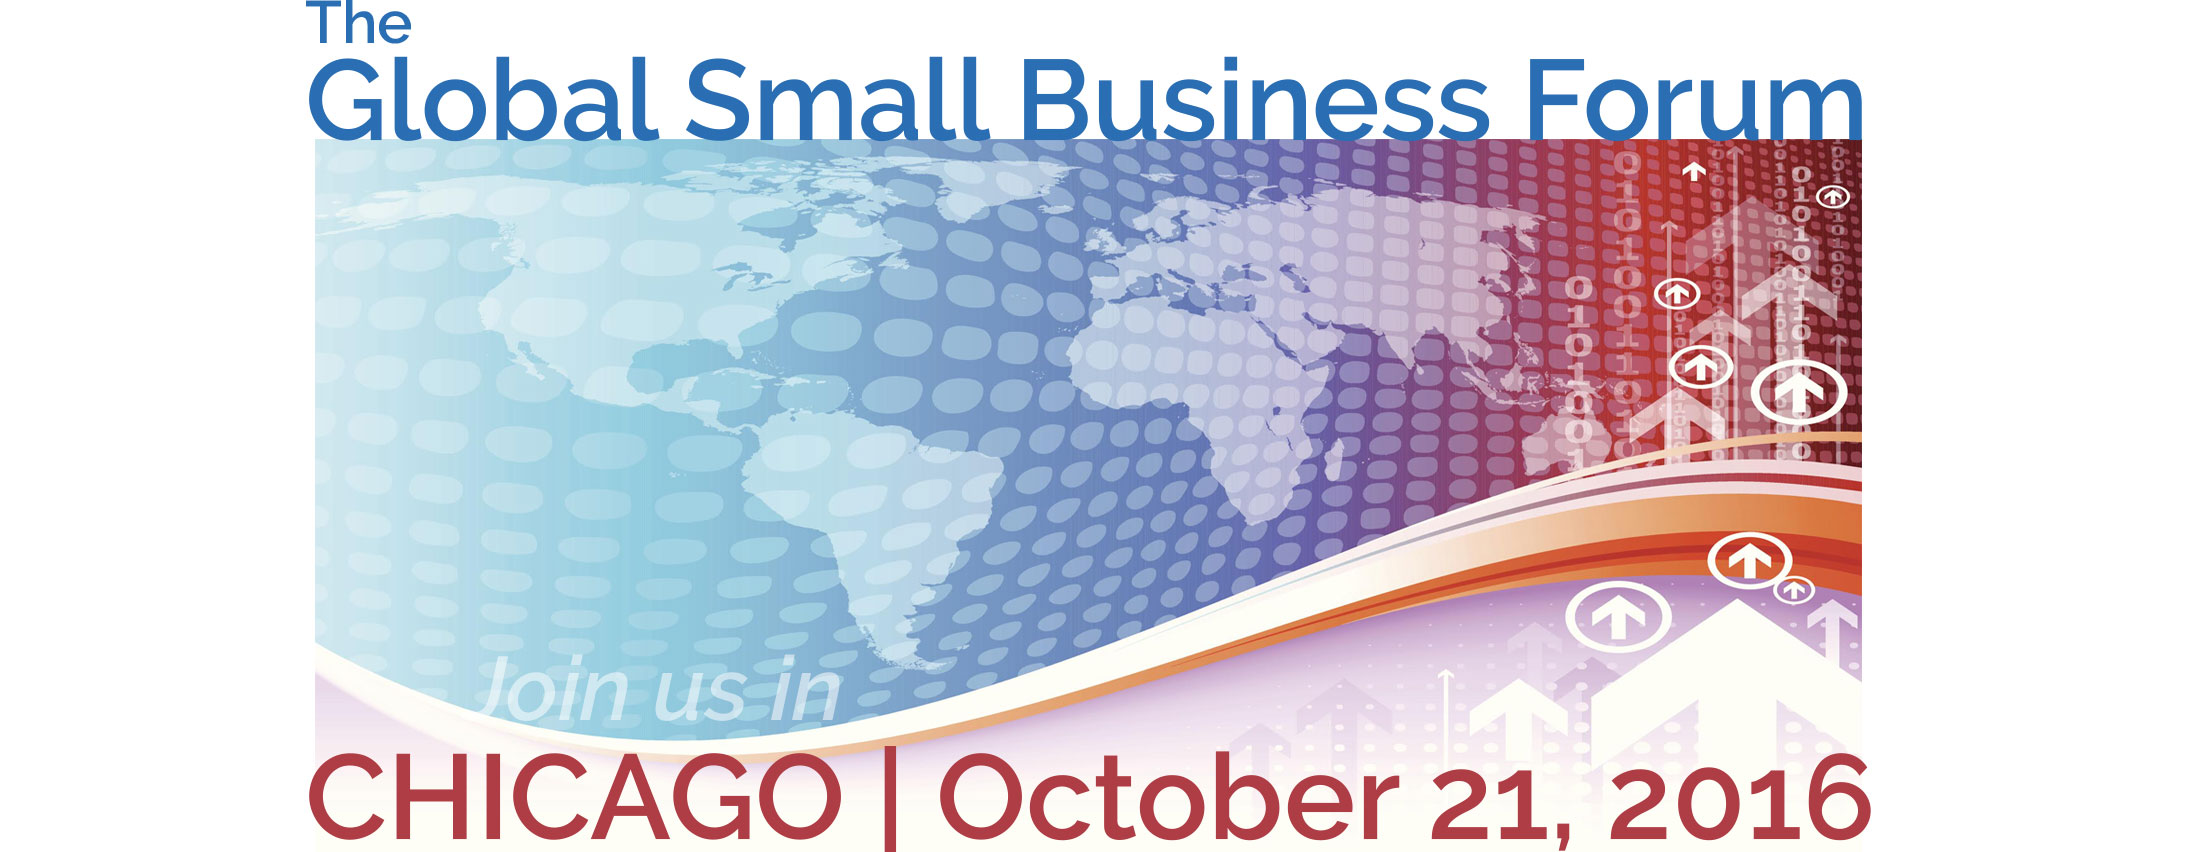 The Global Small Business Forum in Chicago - October 21, 2016